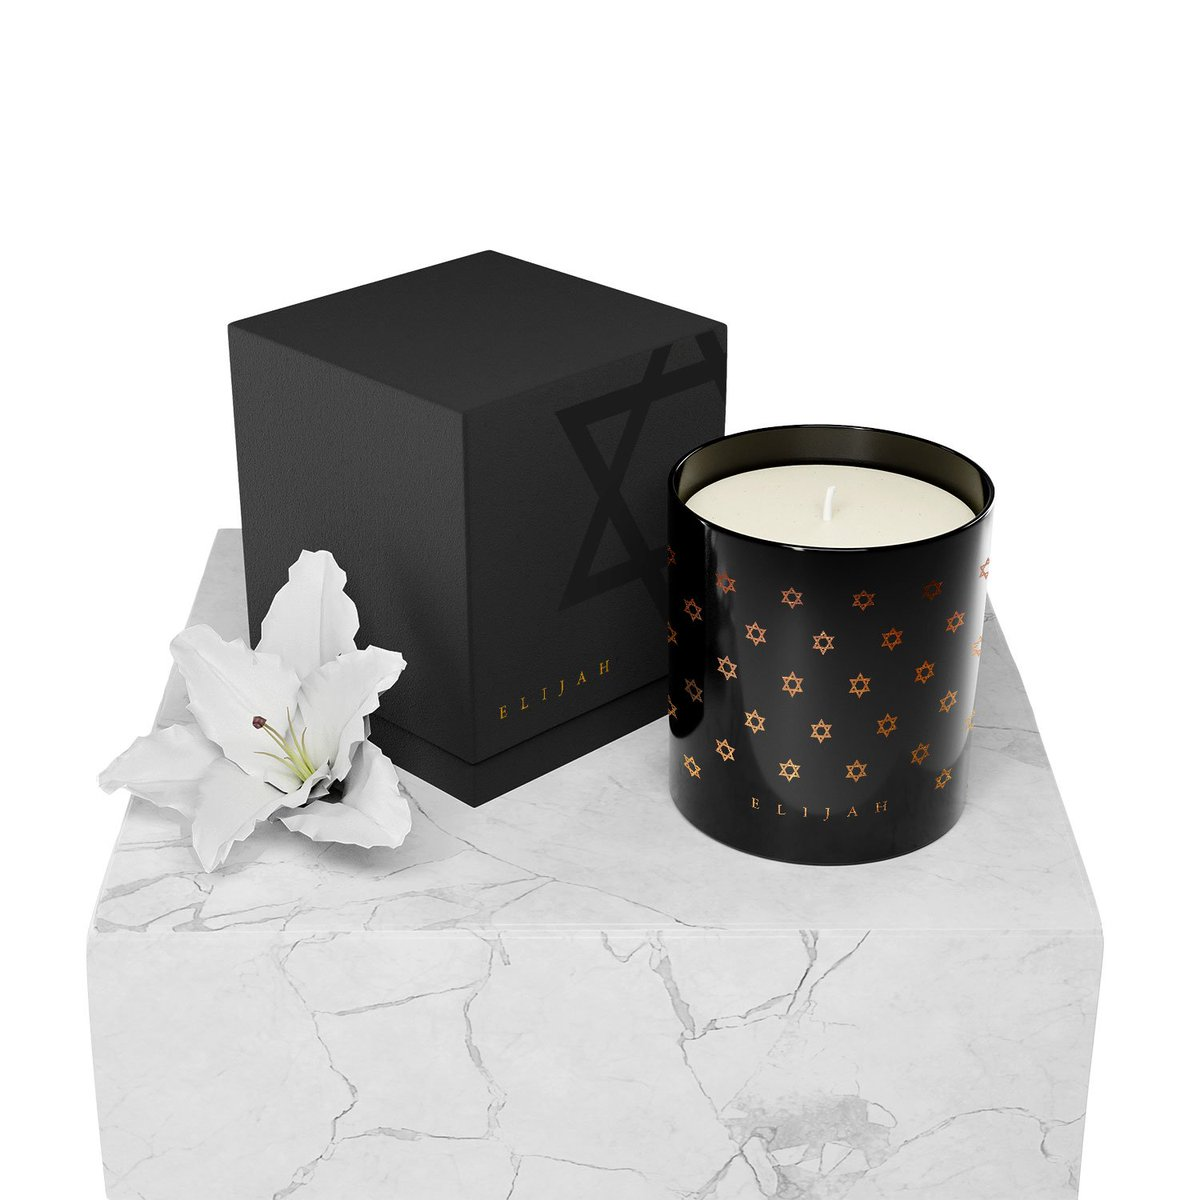 Our Shields of David Candle features notes of sweet and warm, aromatic spices. This Clove & Cardamom fragrance marks the end of Shabbat.